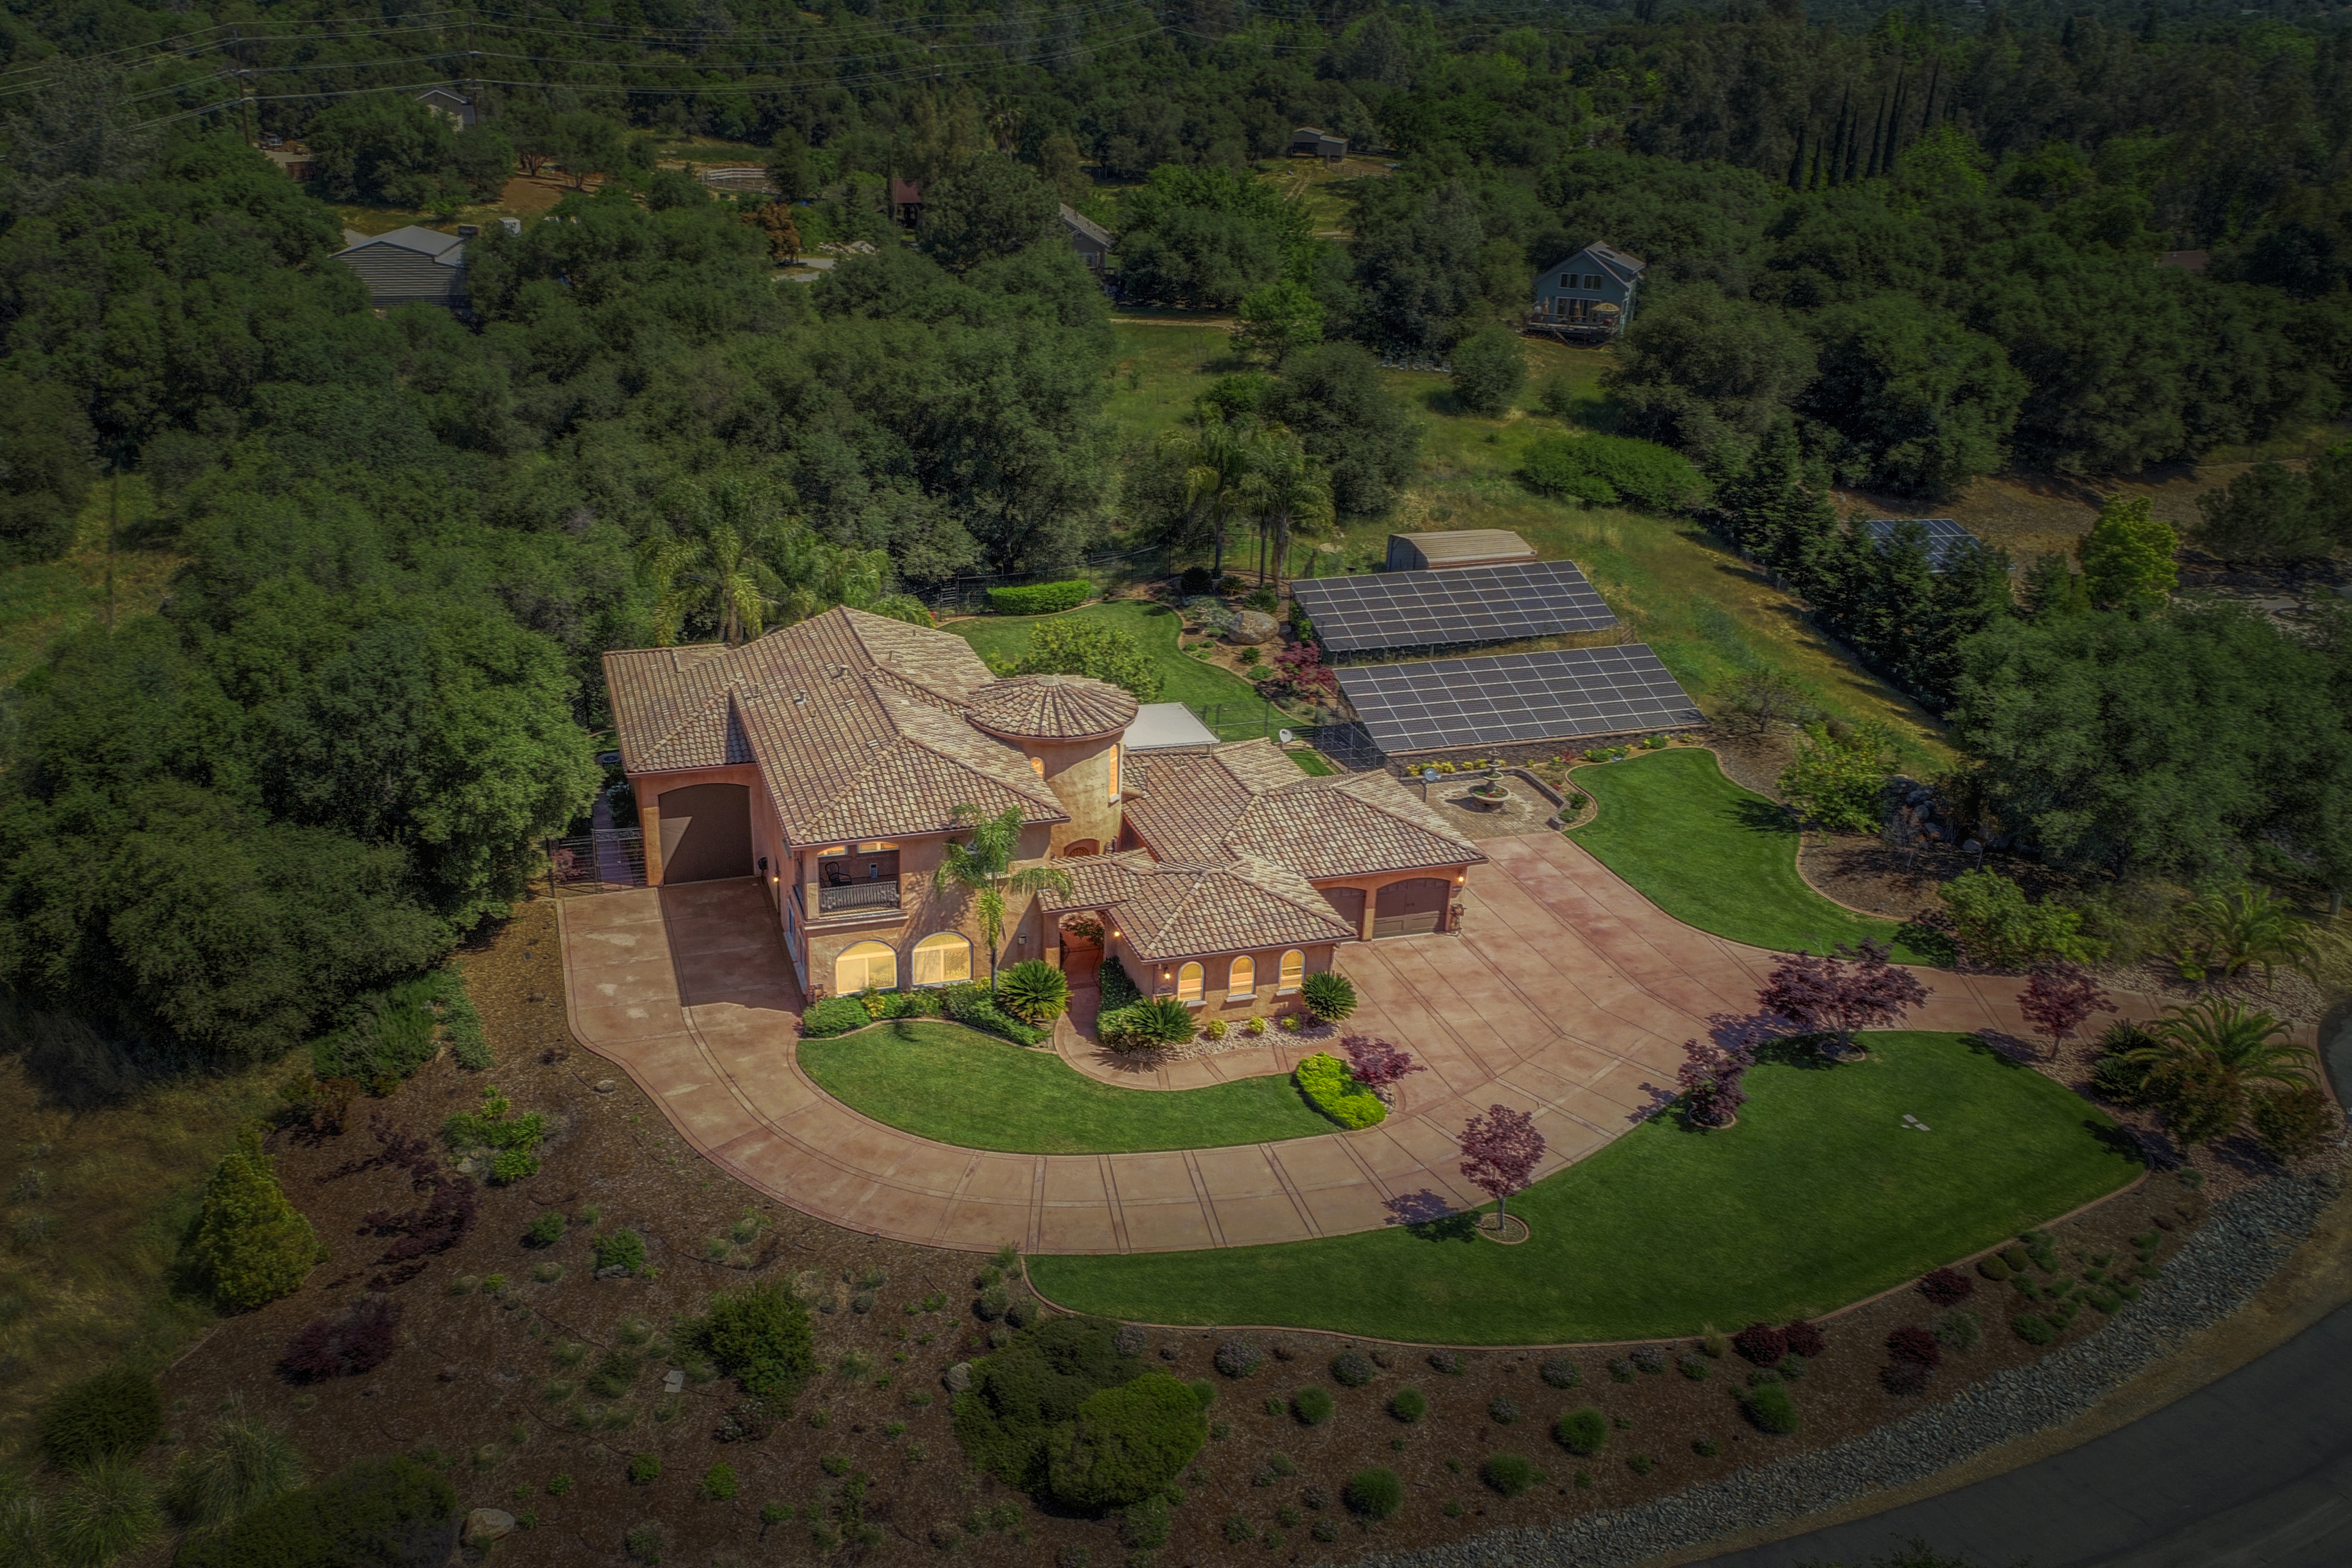 4865 sq ft Custom built Tuscan on 2.5 acres with solar, 45 ft RV Garage plus 4 car garage